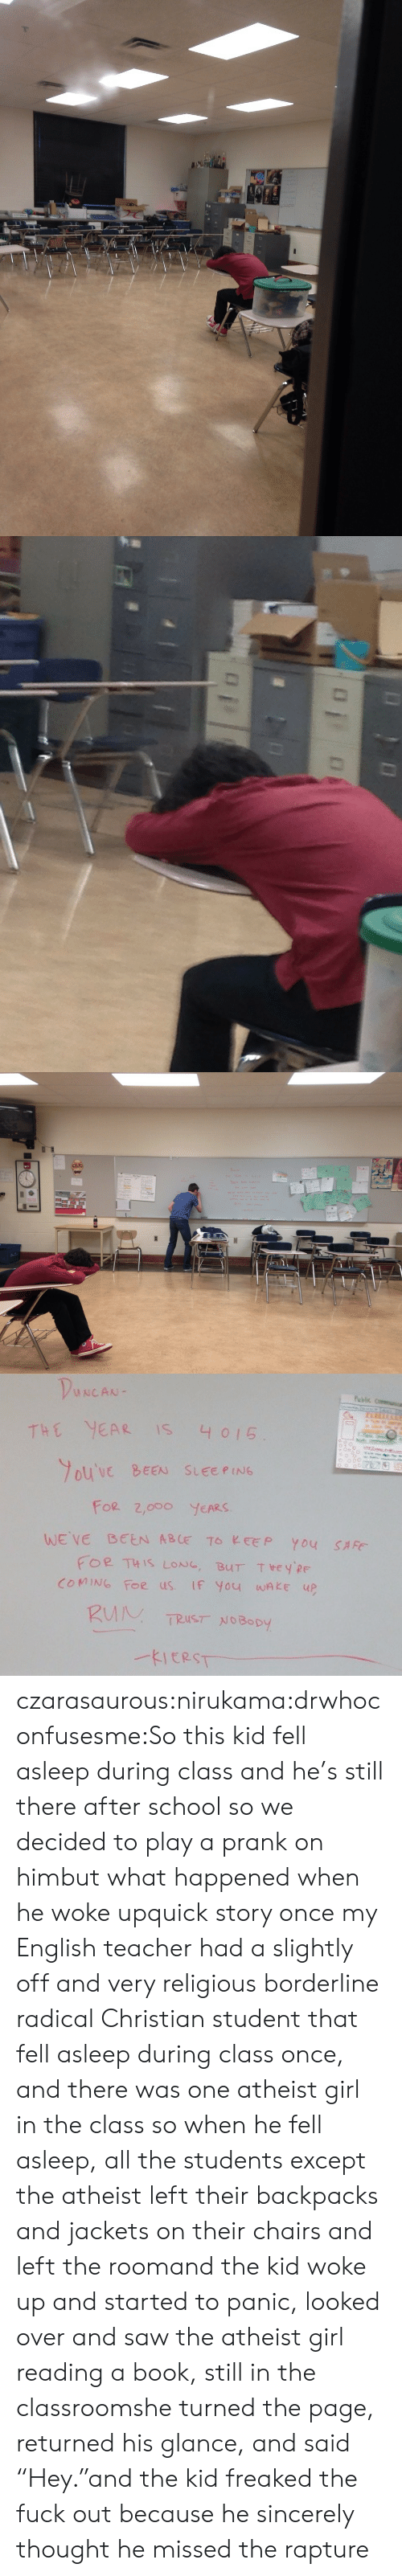 """in the classroom: THE YEA IS 4 015  ouVe BEEN SLEEPING  For 2,ooO YEARS  FOR THIS LoNG, BUT Tey  COMING Foe us IF You wAke up  HEY PE  TRUST NoBopy czarasaurous:nirukama:drwhoconfusesme:So this kid fell asleep during class and he's still there after school so we decided to play a prank on himbut what happened when he woke upquick story once my English teacher had a slightly off and very religious borderline radical Christian student that fell asleep during class once, and there was one atheist girl in the class so when he fell asleep, all the students except the atheist left their backpacks and jackets on their chairs and left the roomand the kid woke up and started to panic, looked over and saw the atheist girl reading a book, still in the classroomshe turned the page, returned his glance, and said """"Hey.""""and the kid freaked the fuck out because he sincerely thought he missed the rapture"""